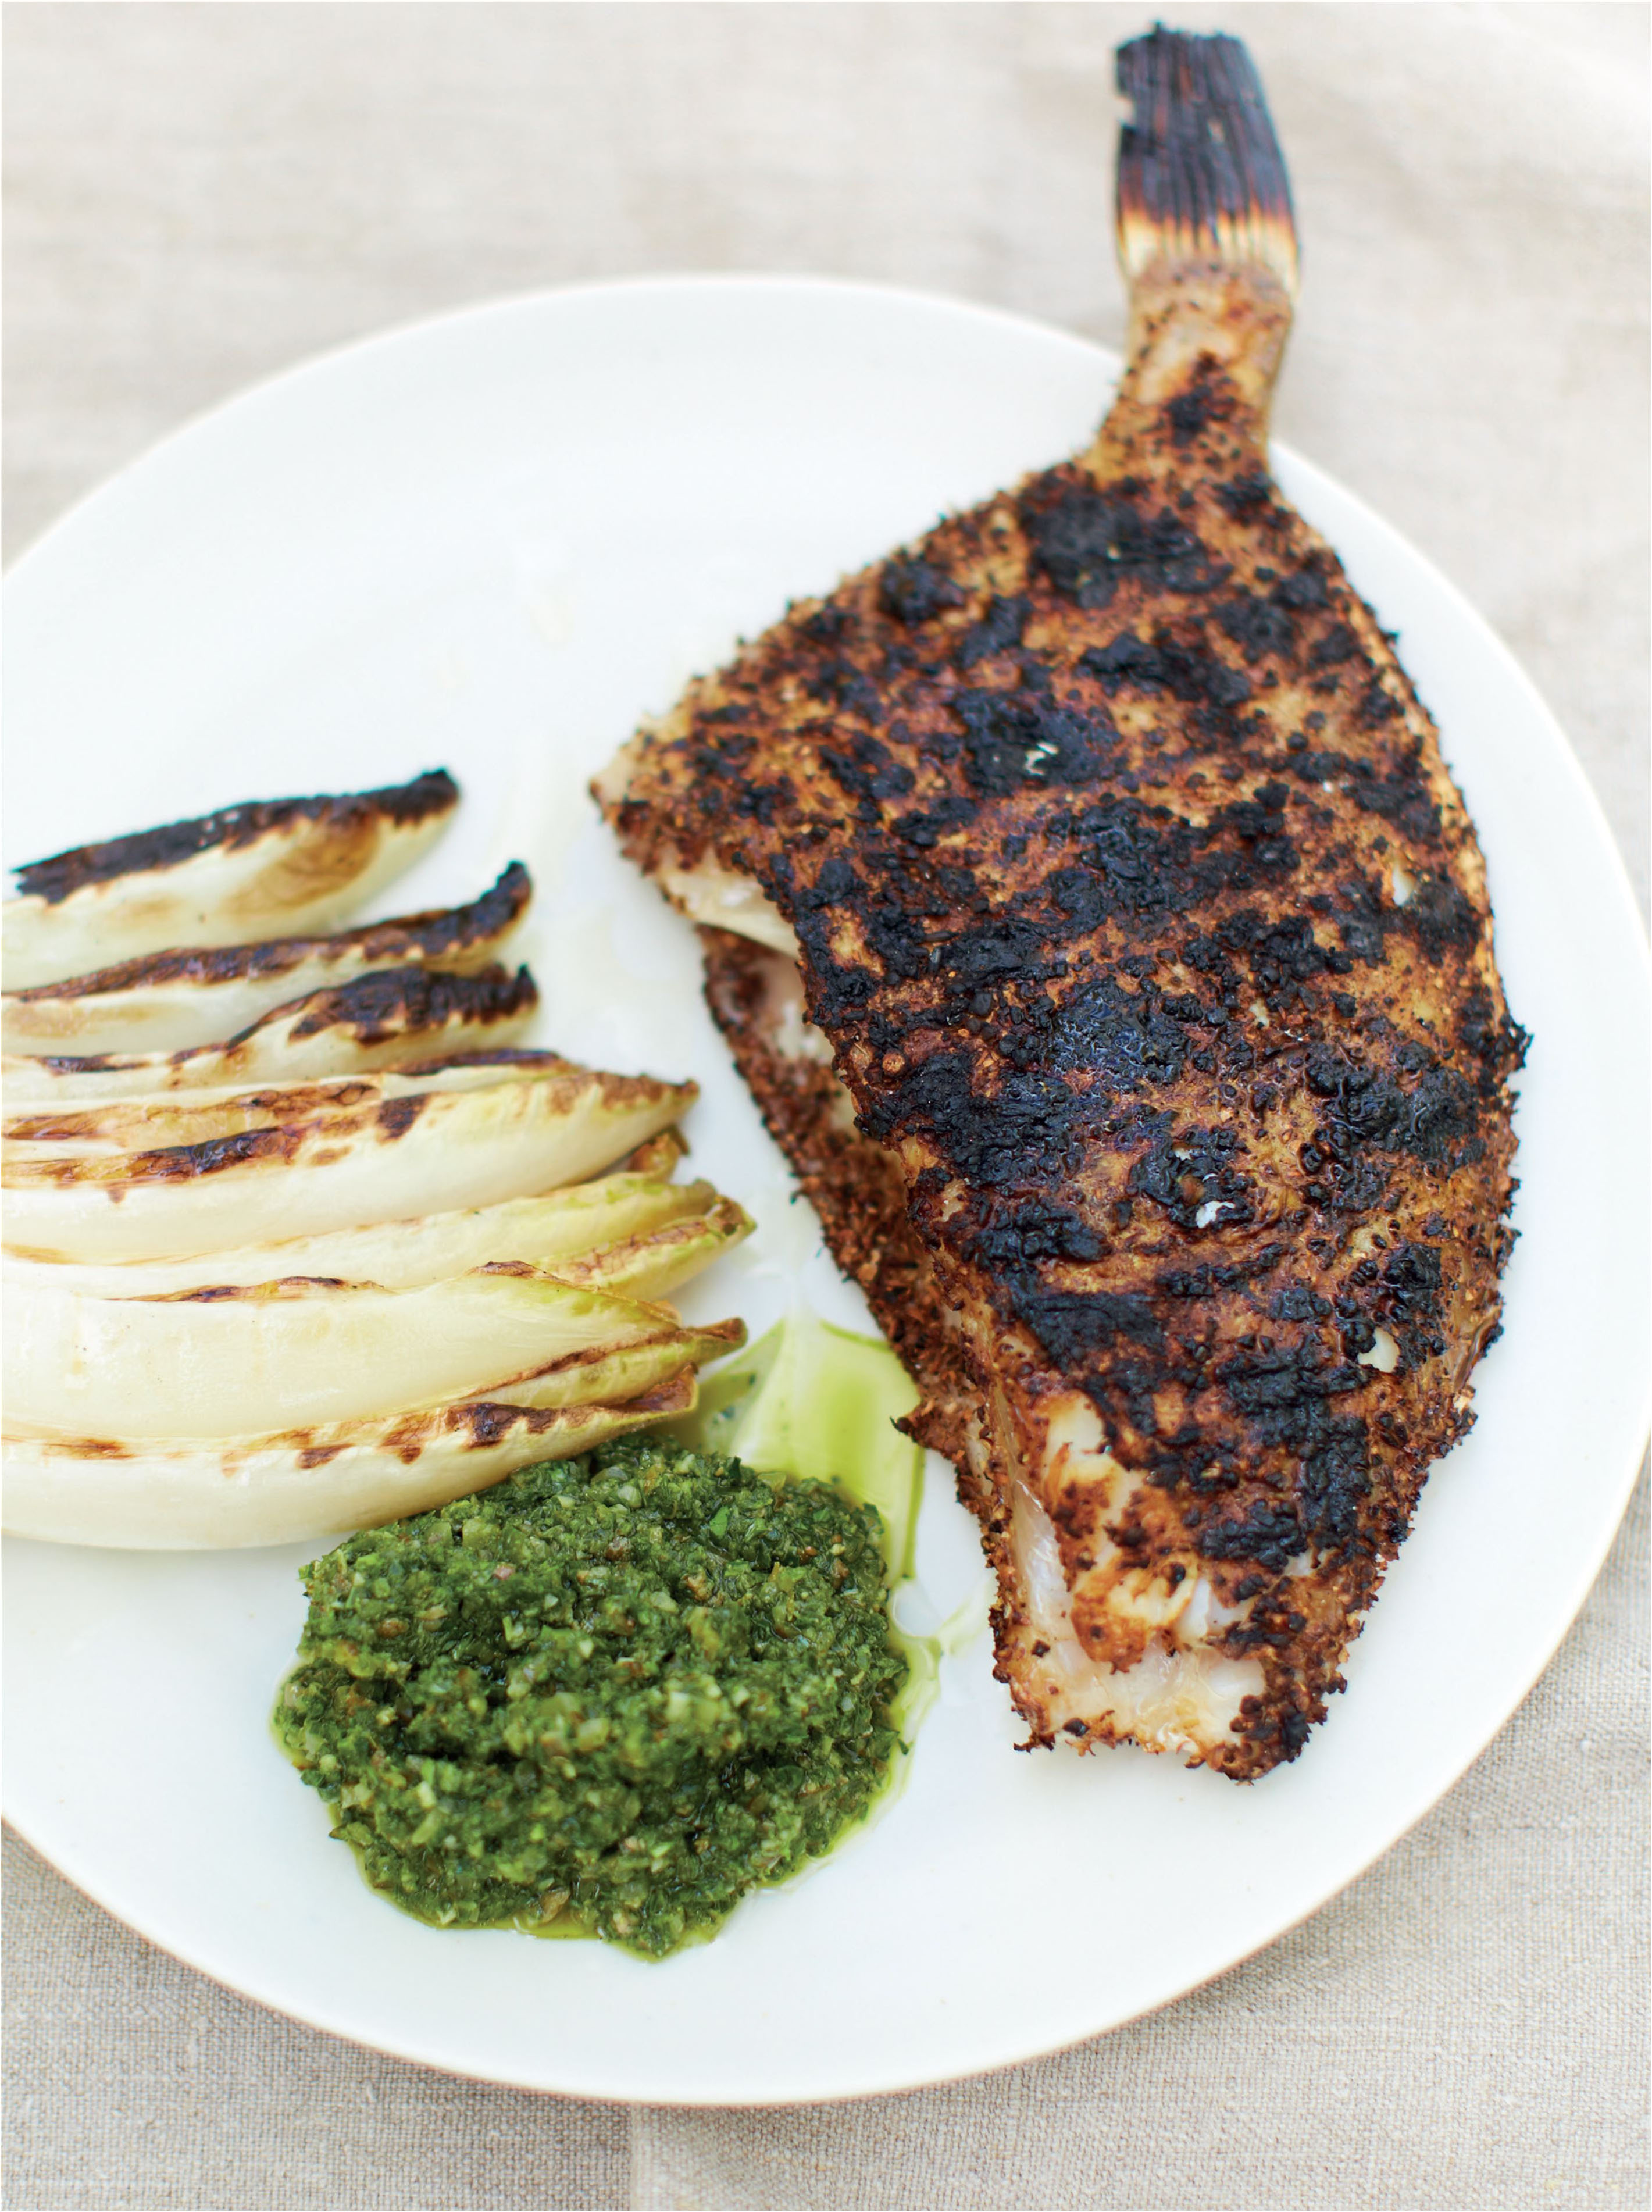 Barbecued John Dory with green sauce and chicory